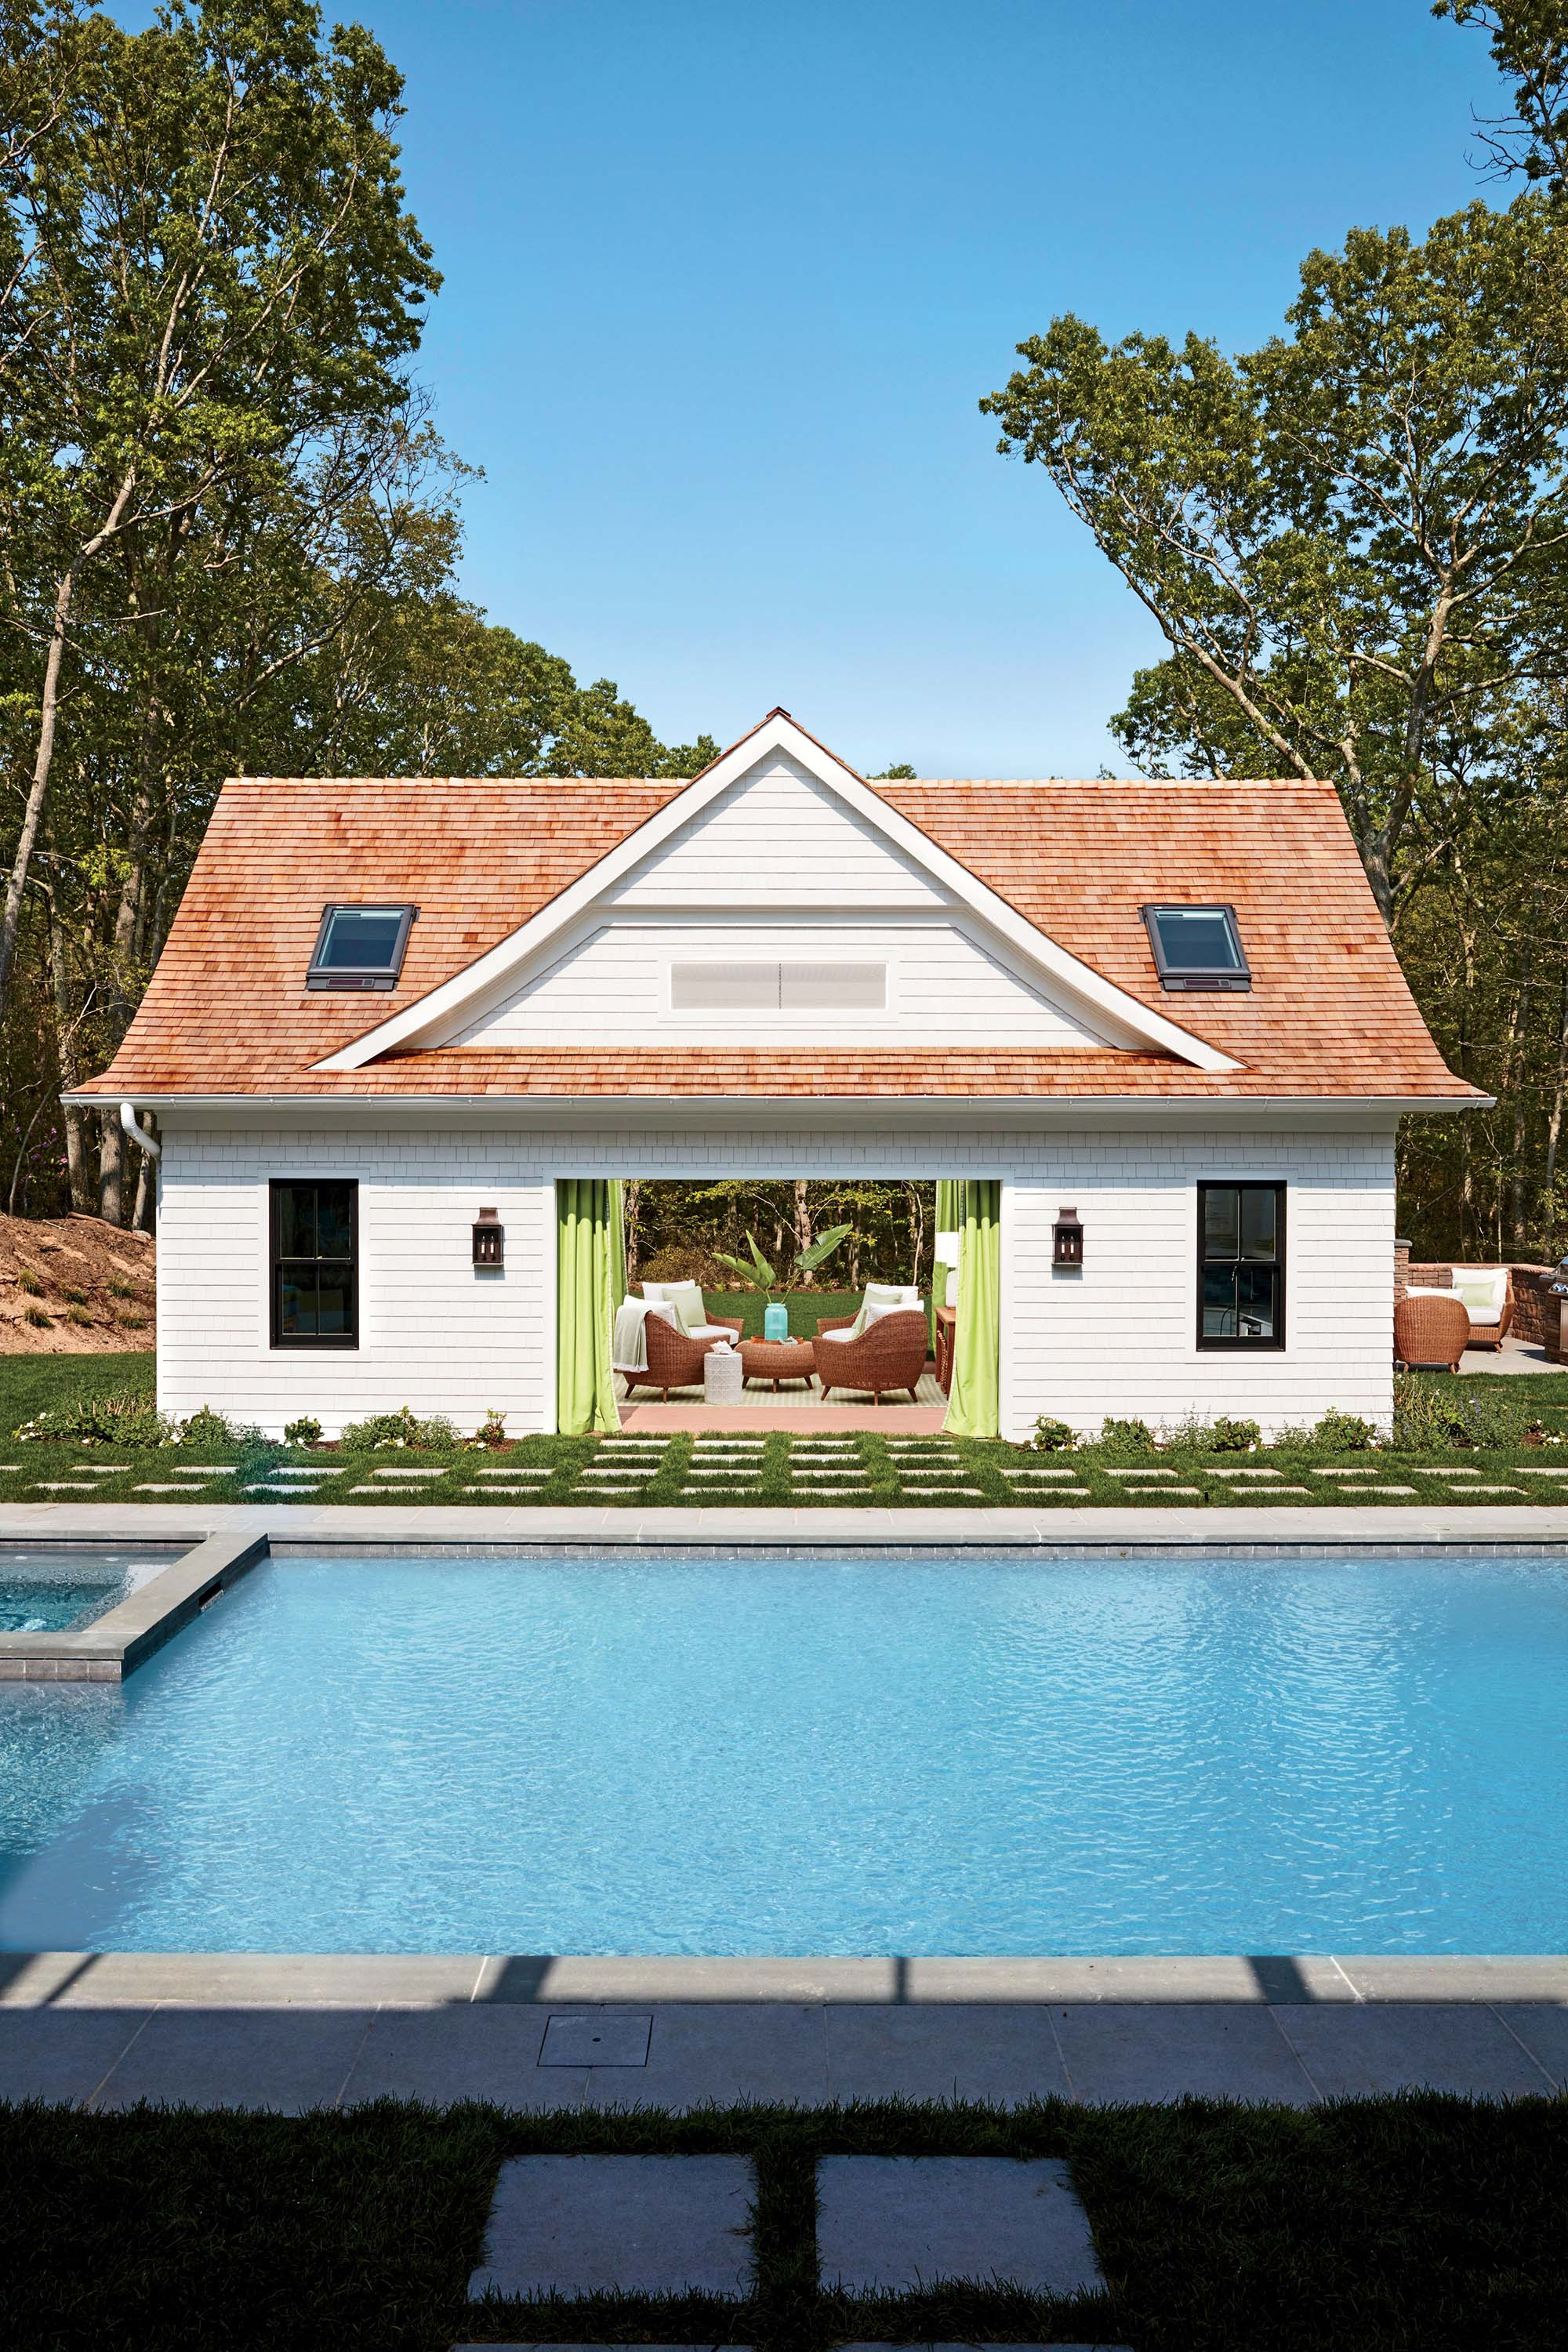 beautiful pool house ideas white siding french doors green curtains pass through design cedar shake shingles